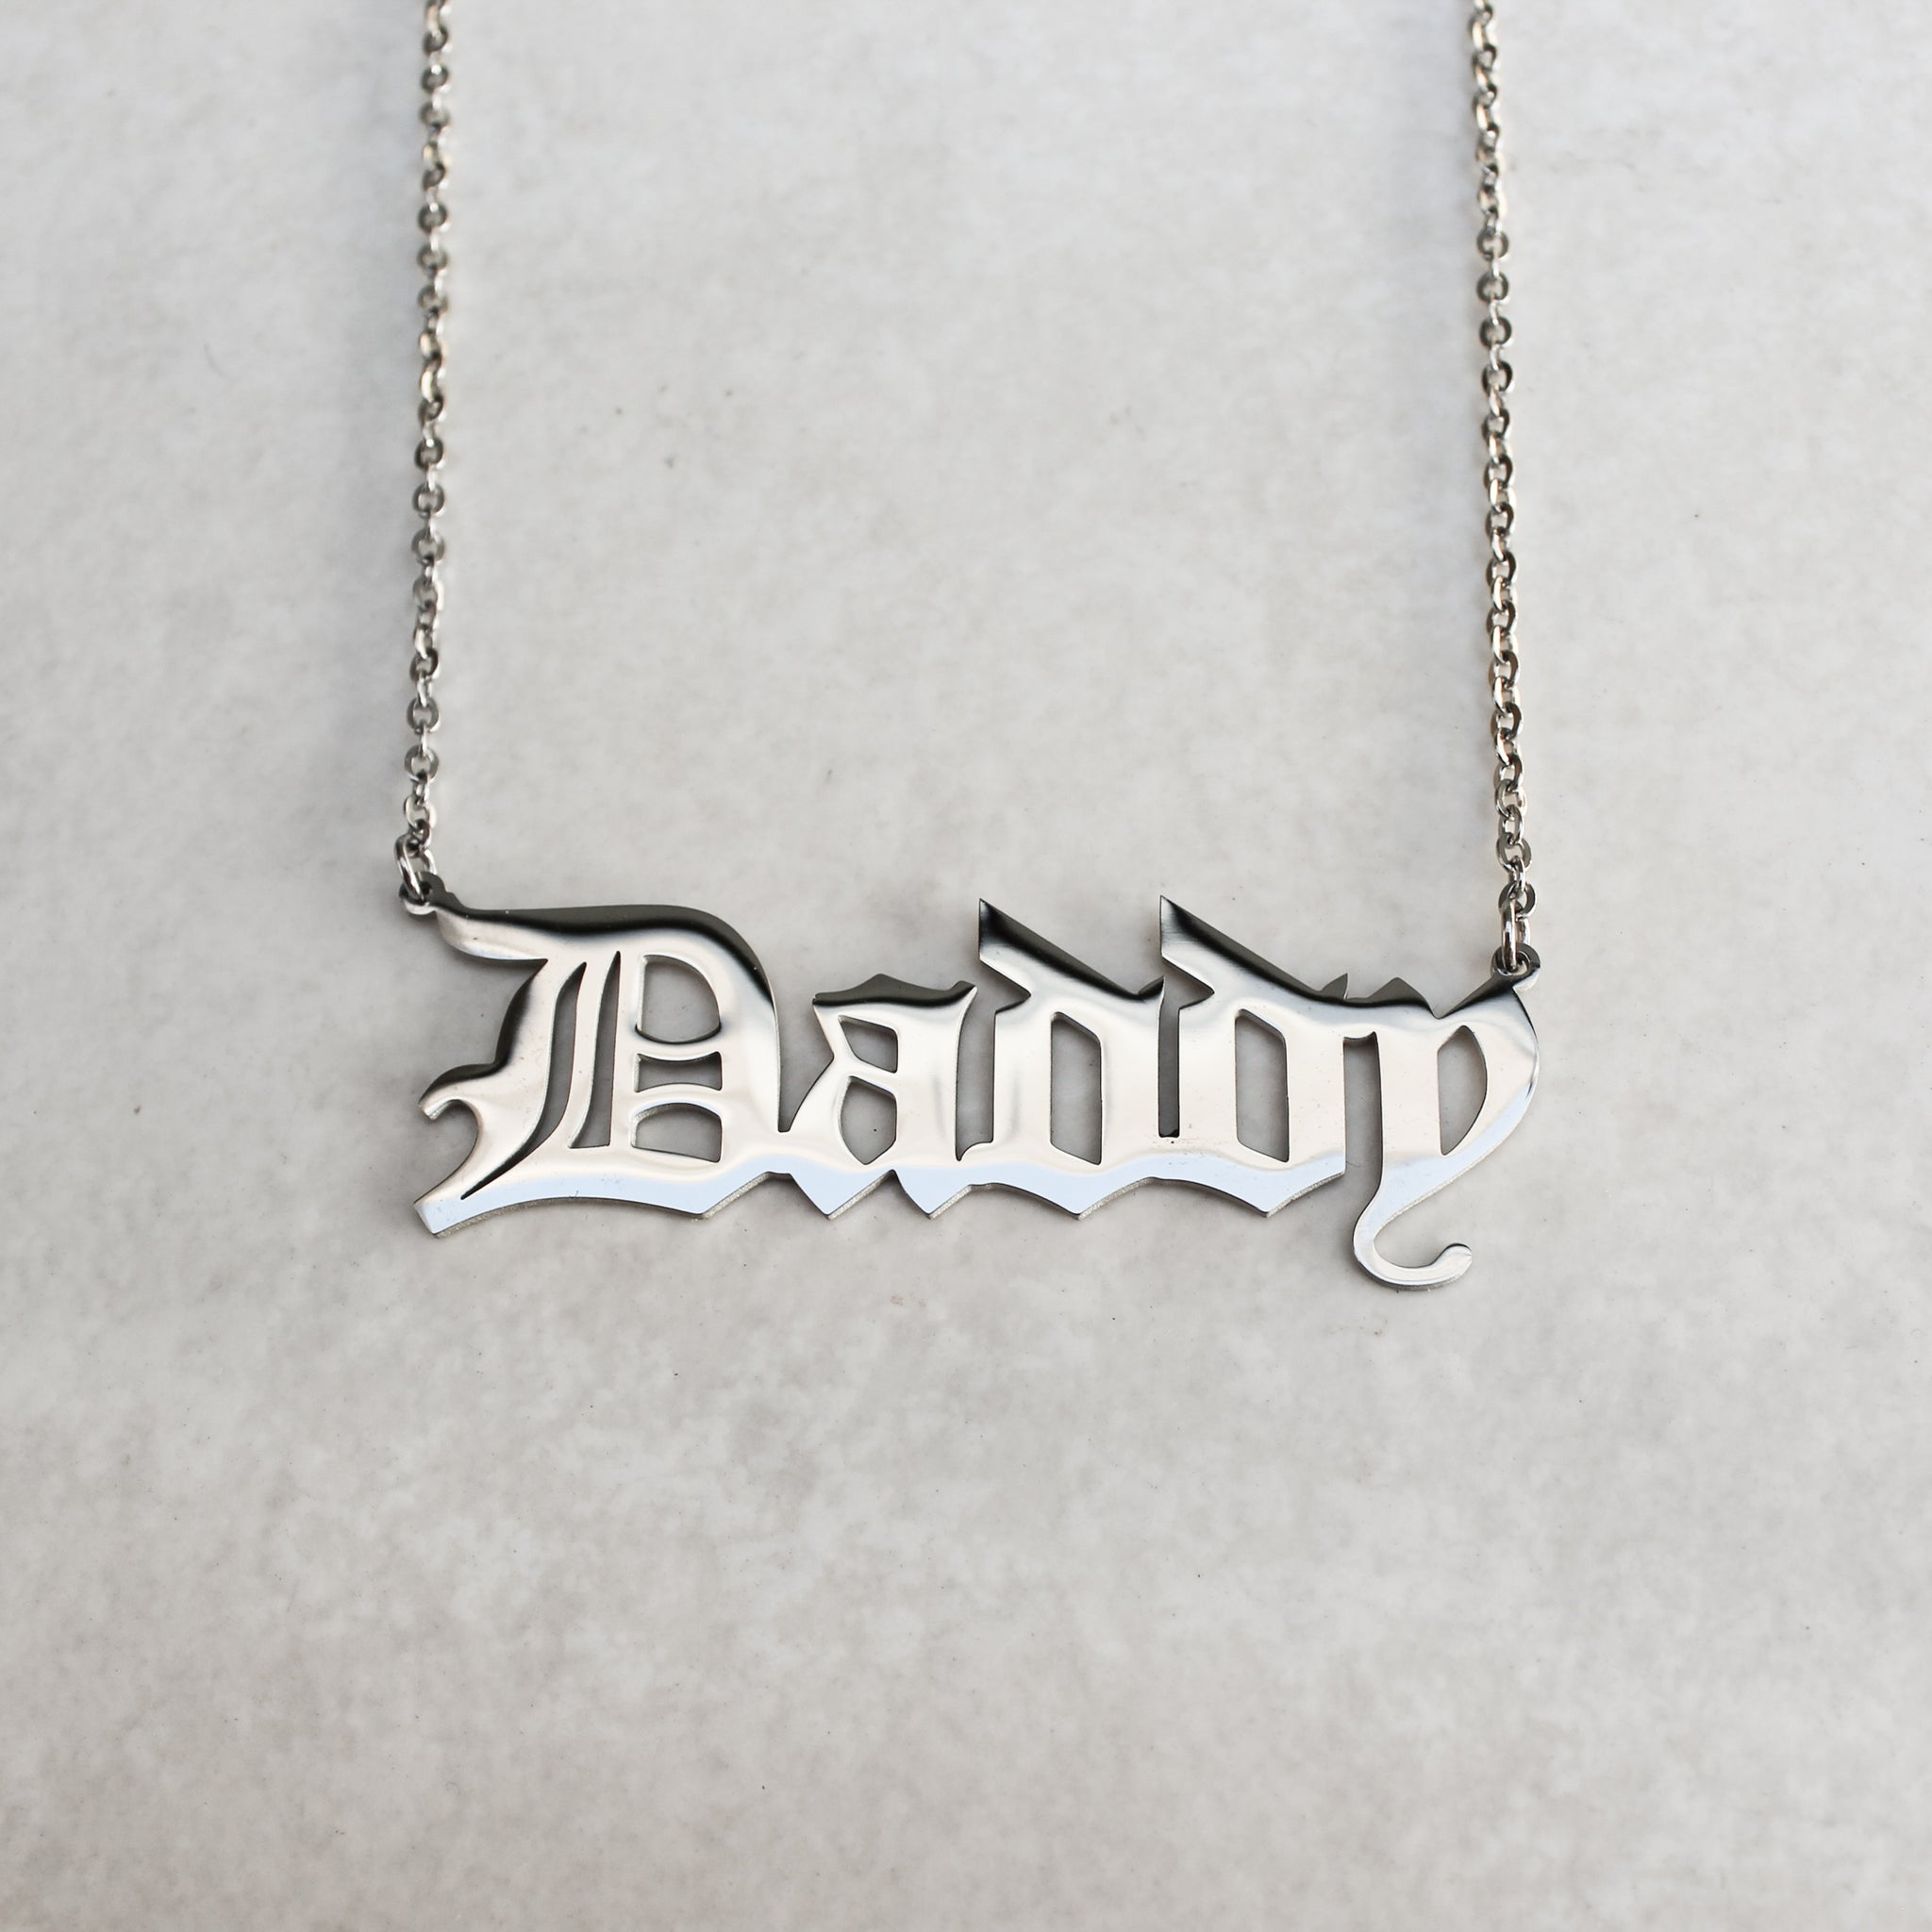 Daddy + Baby Necklace Set with Pouches - Silver - Blunted Objects